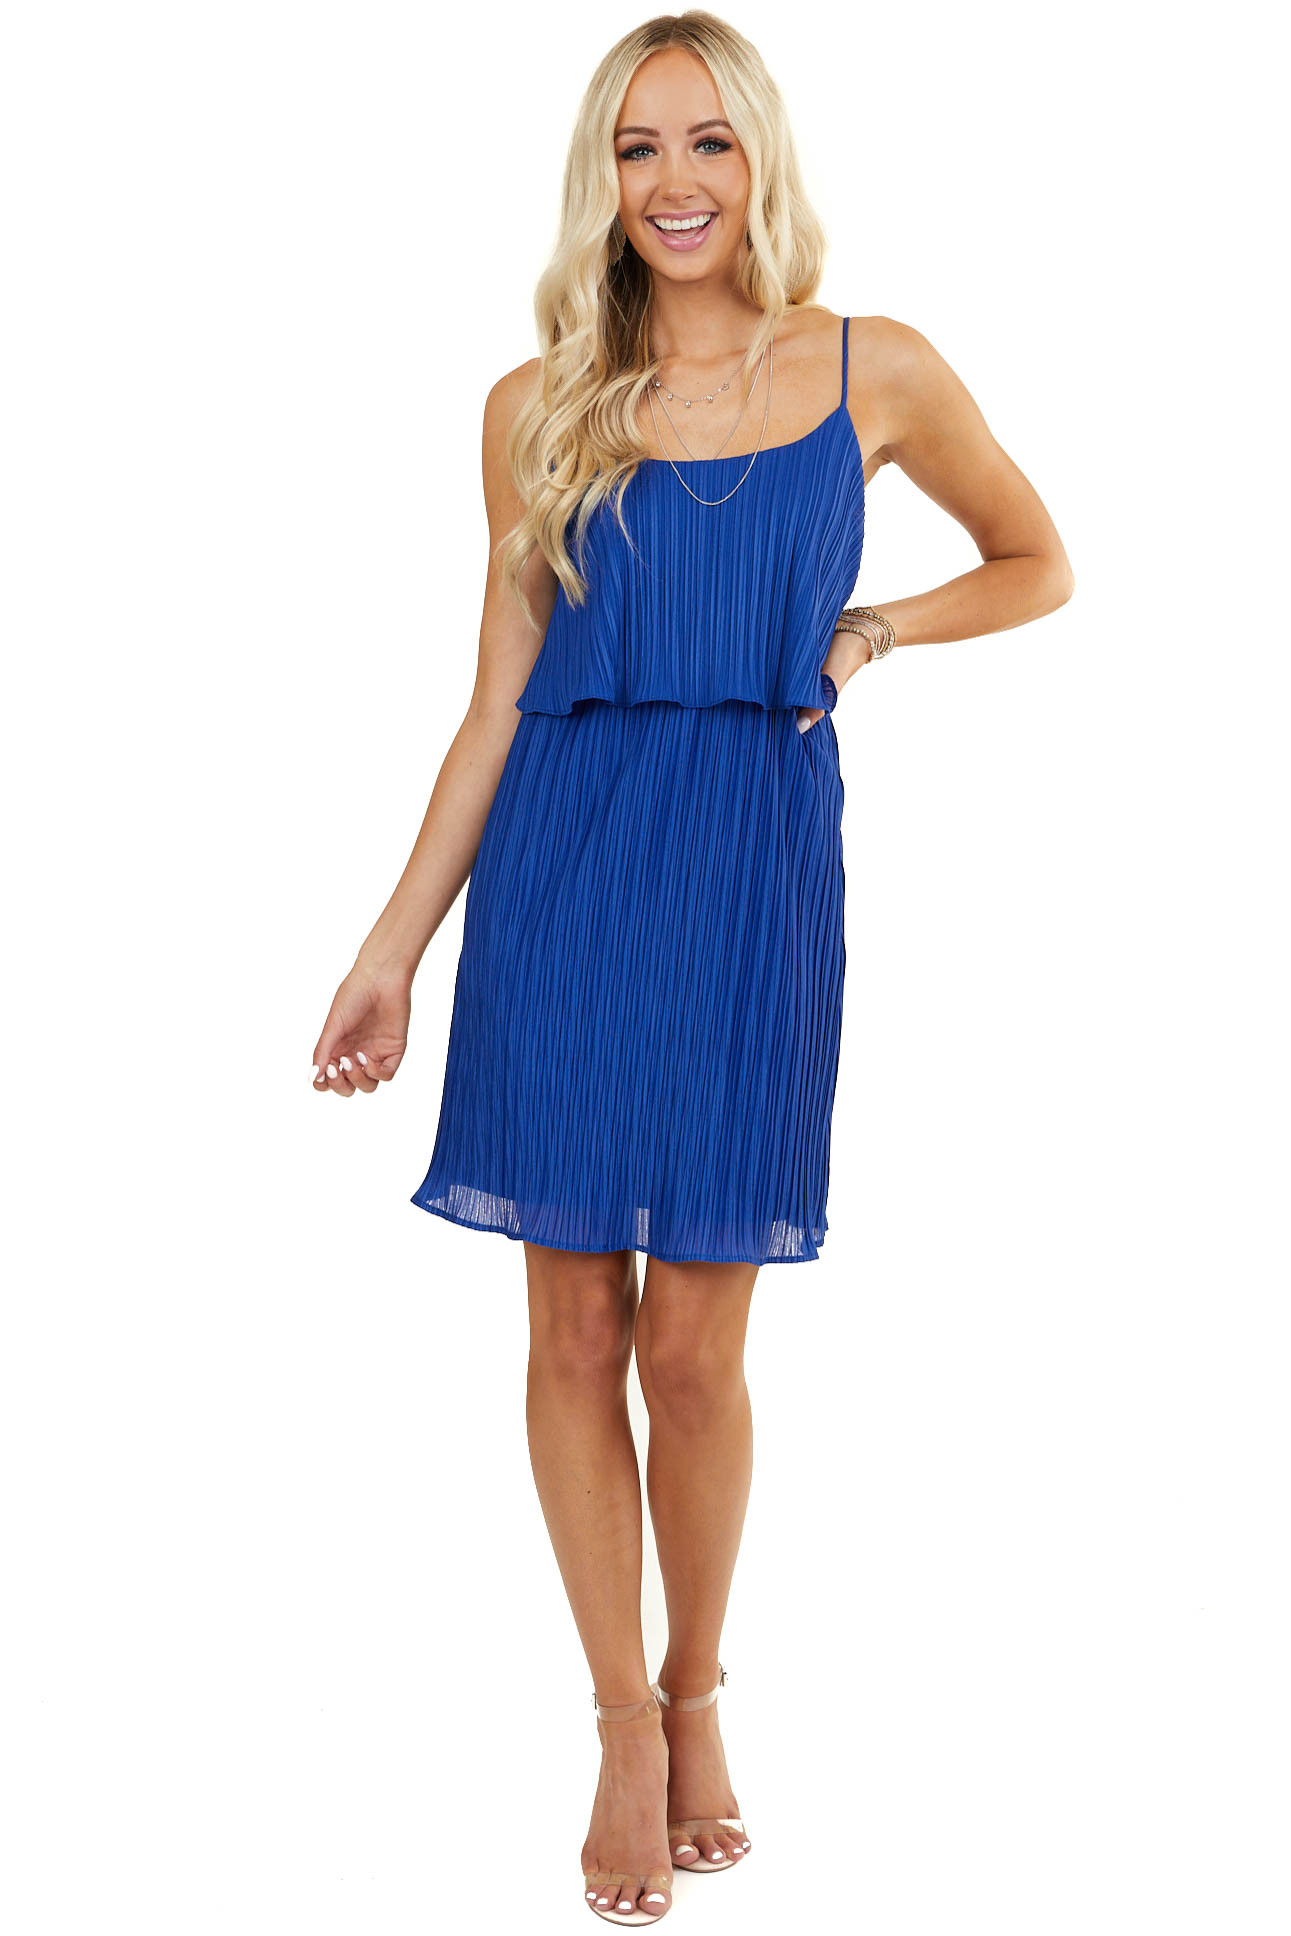 Royal Blue Sleeveless Textured Dress with Overlay Detail